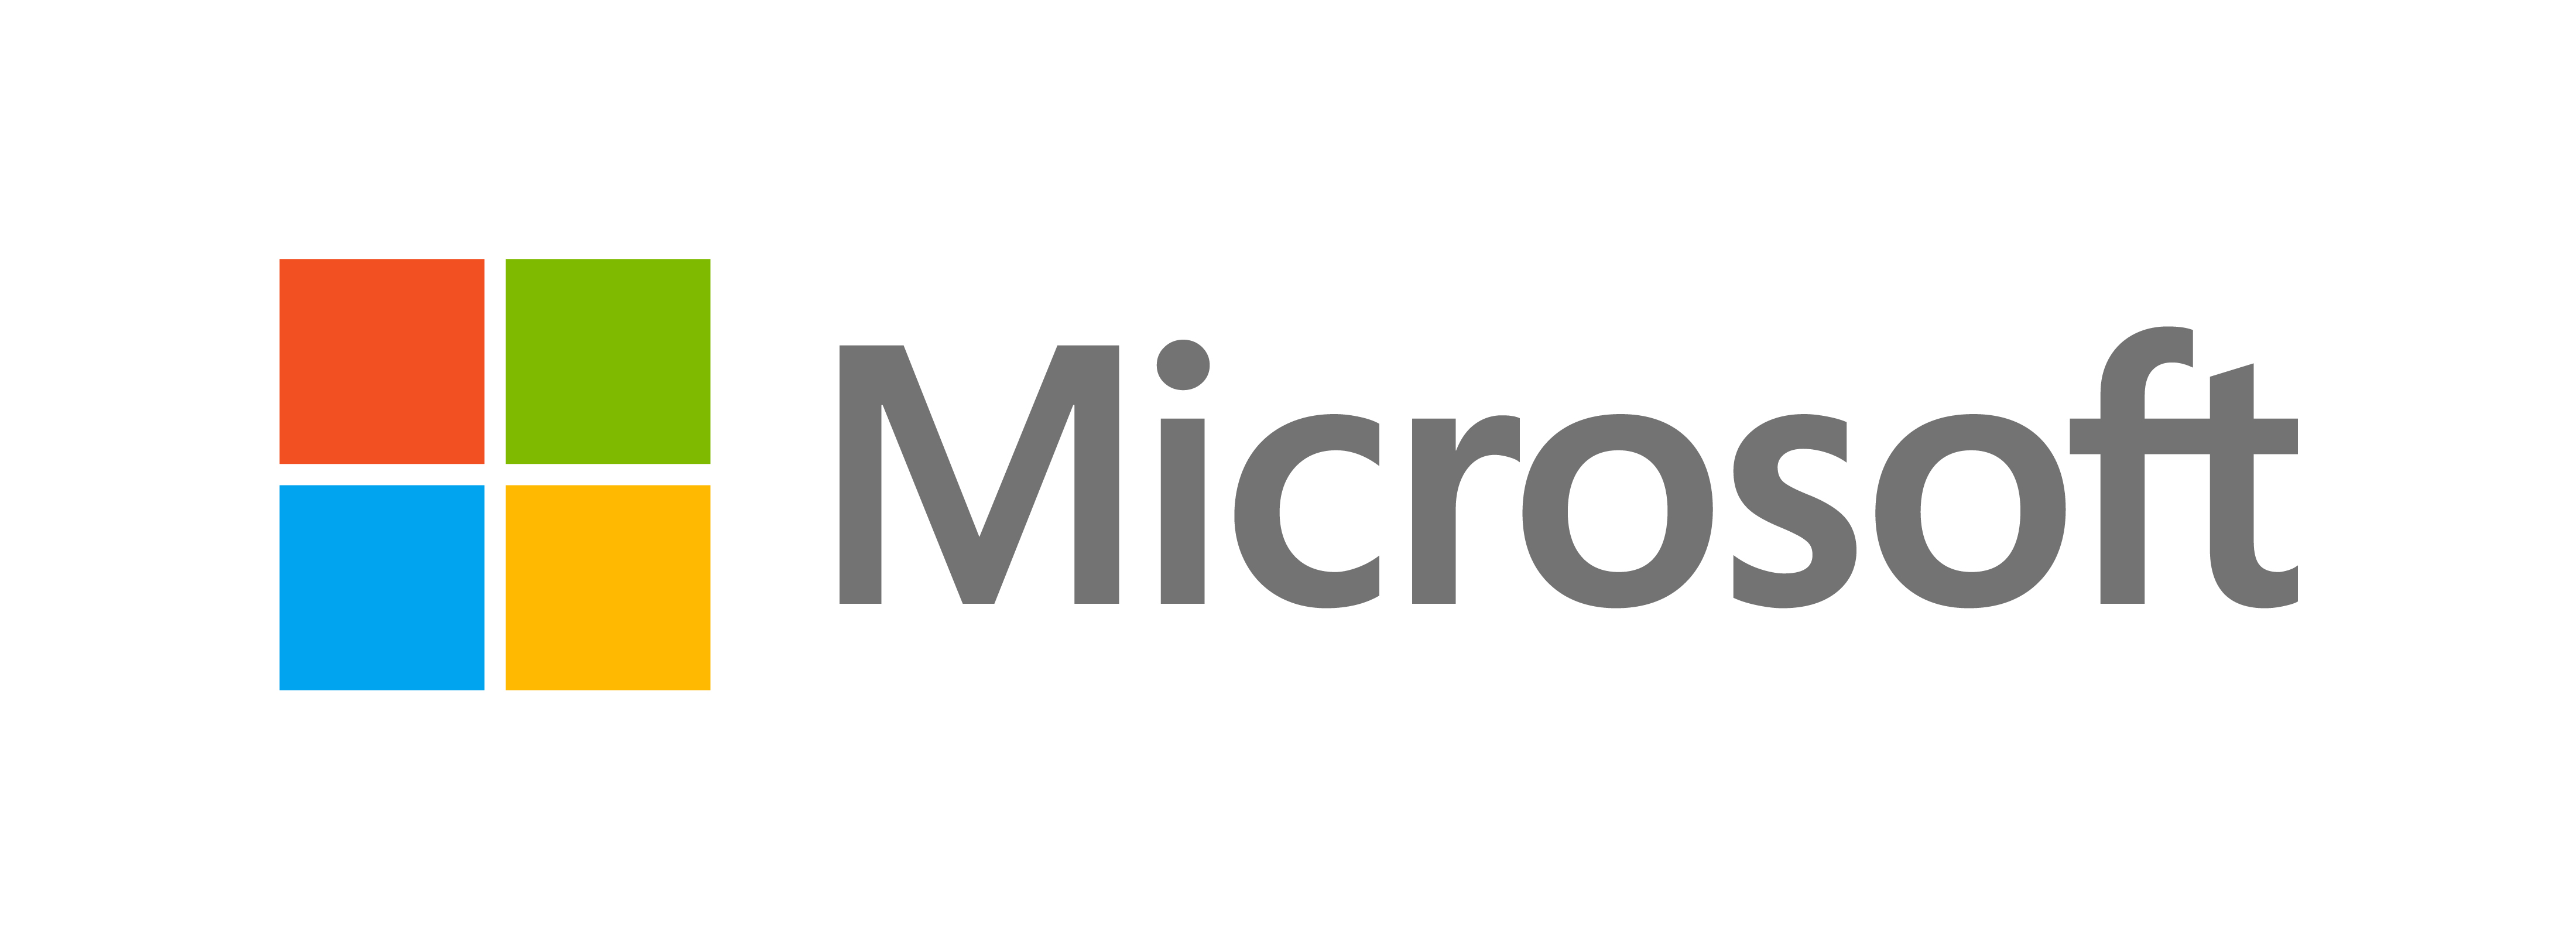 http://teknonuz.files.wordpress.com/2012/11/microsoft-logo-2012-hd-version.jpg